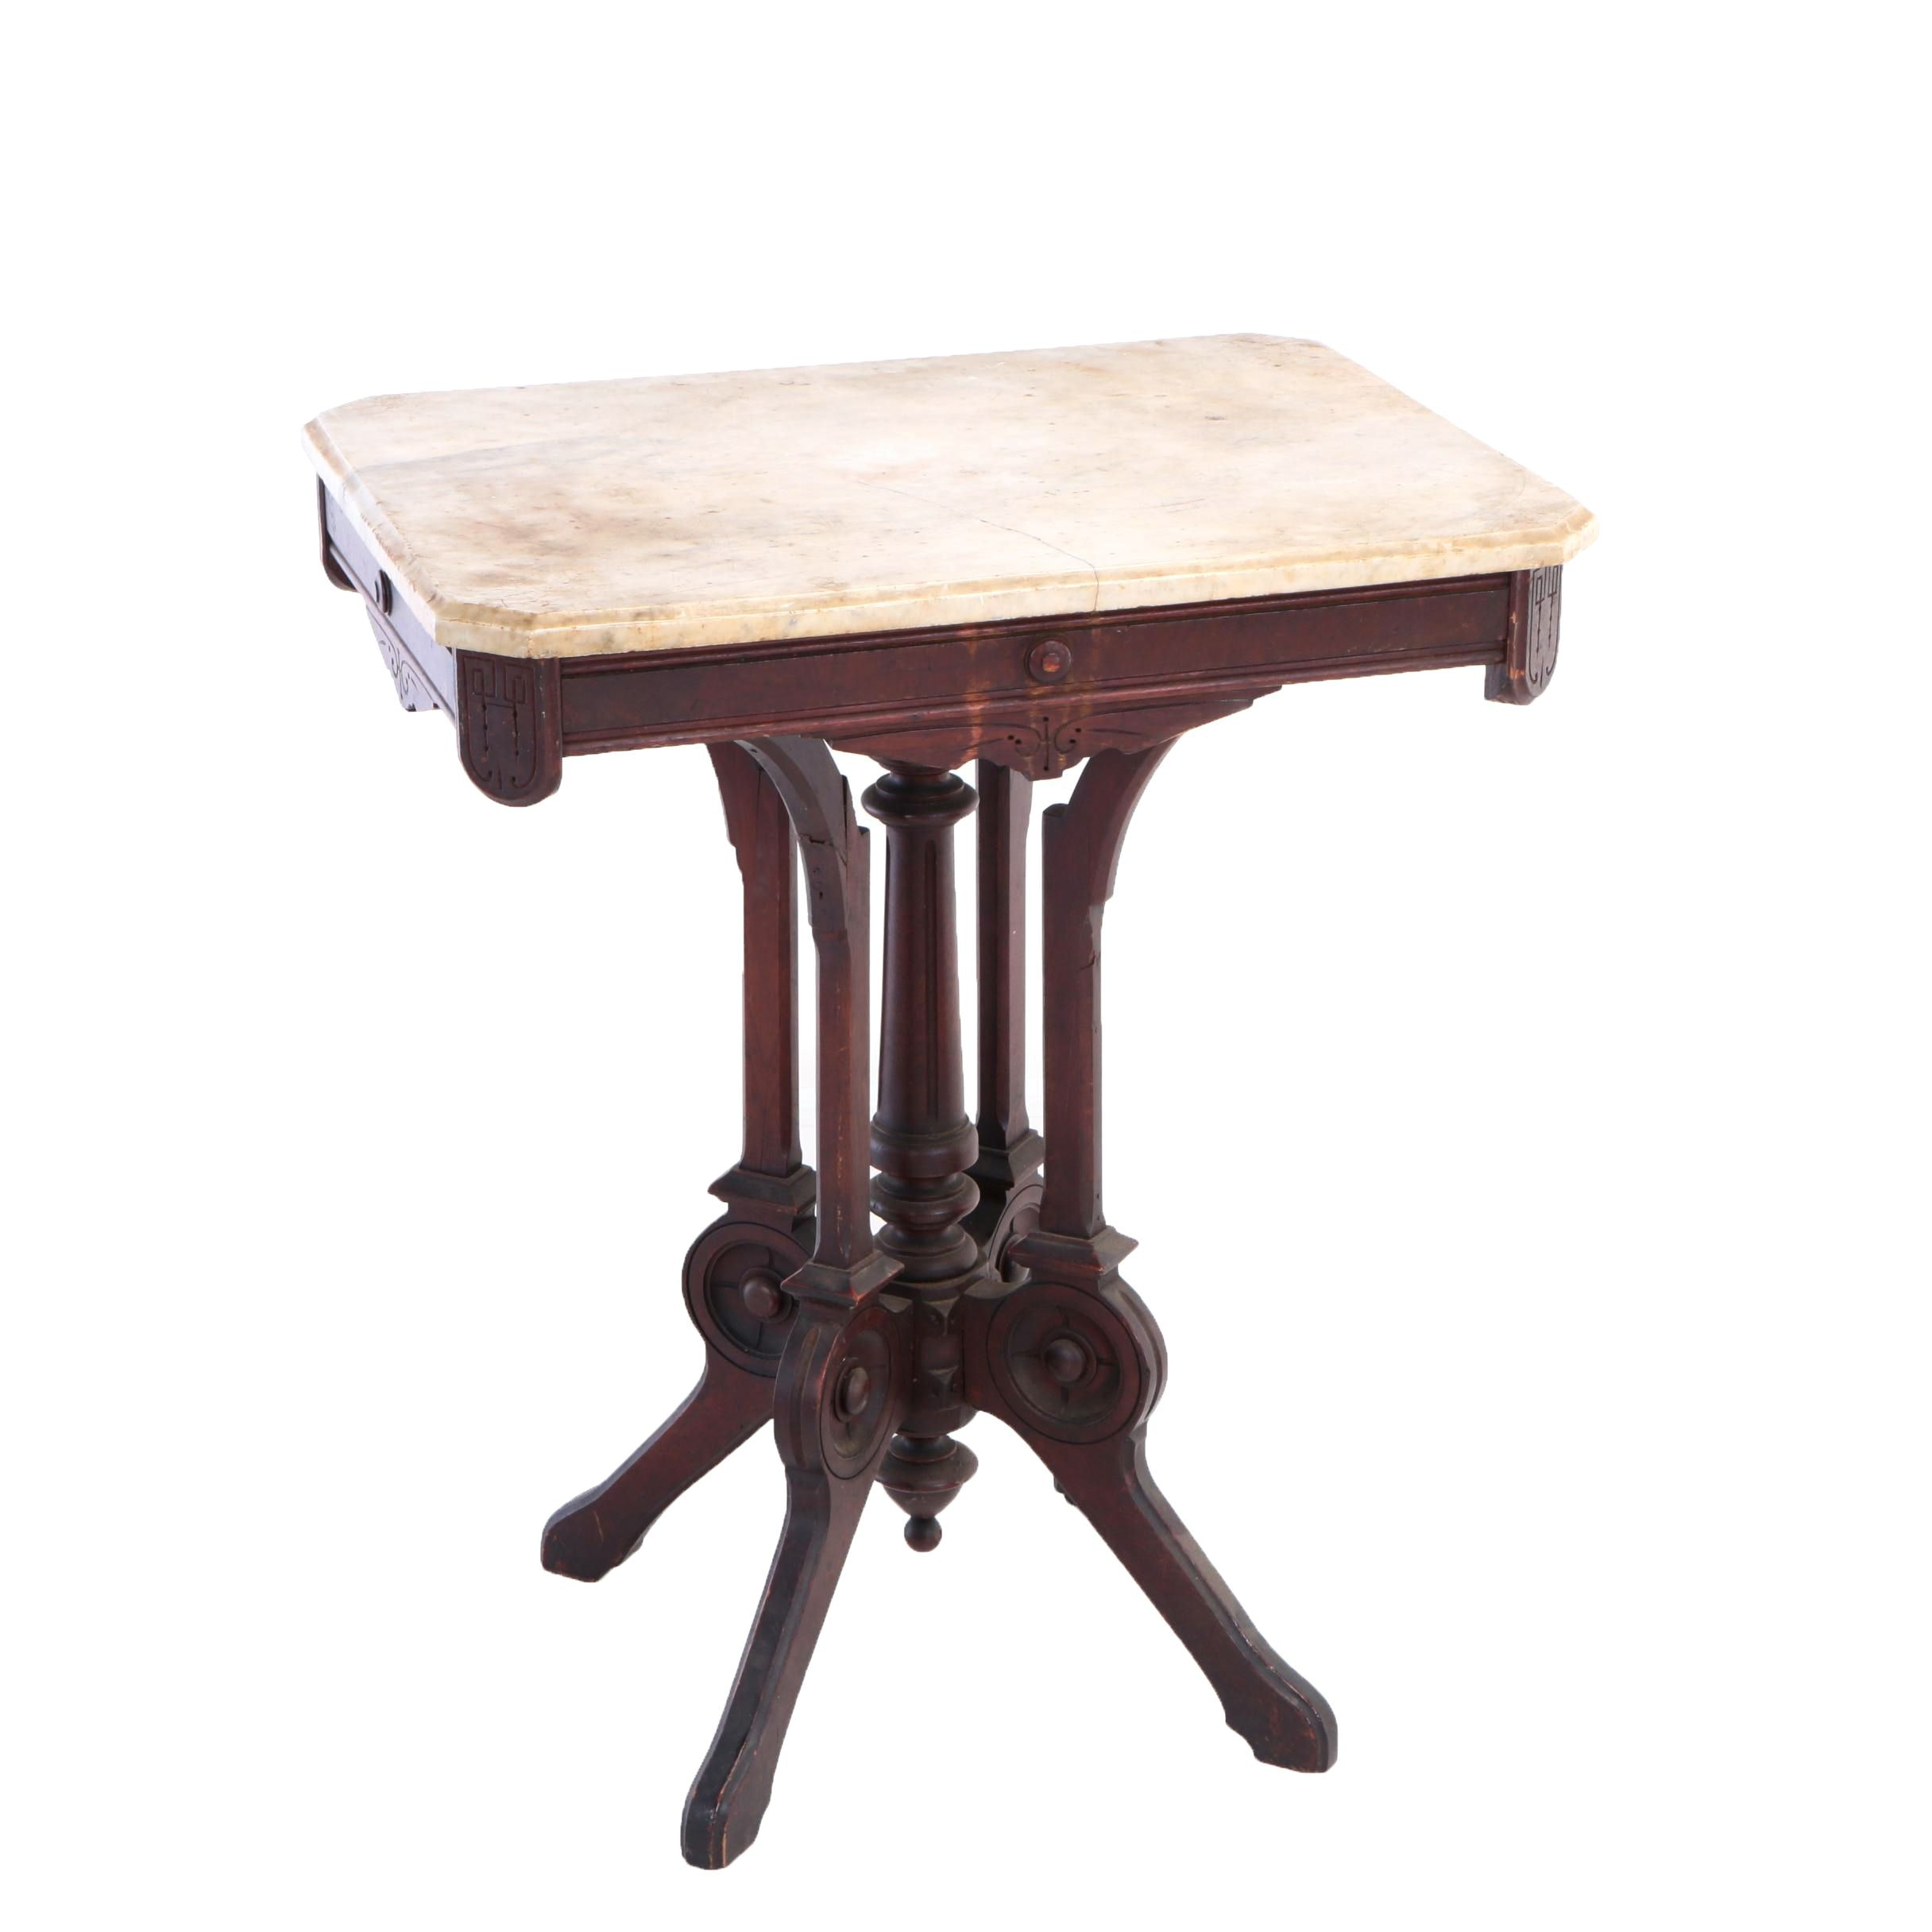 Victorian Carved Walnut And White Marble Side Table, Late 19th Century |  EBTH